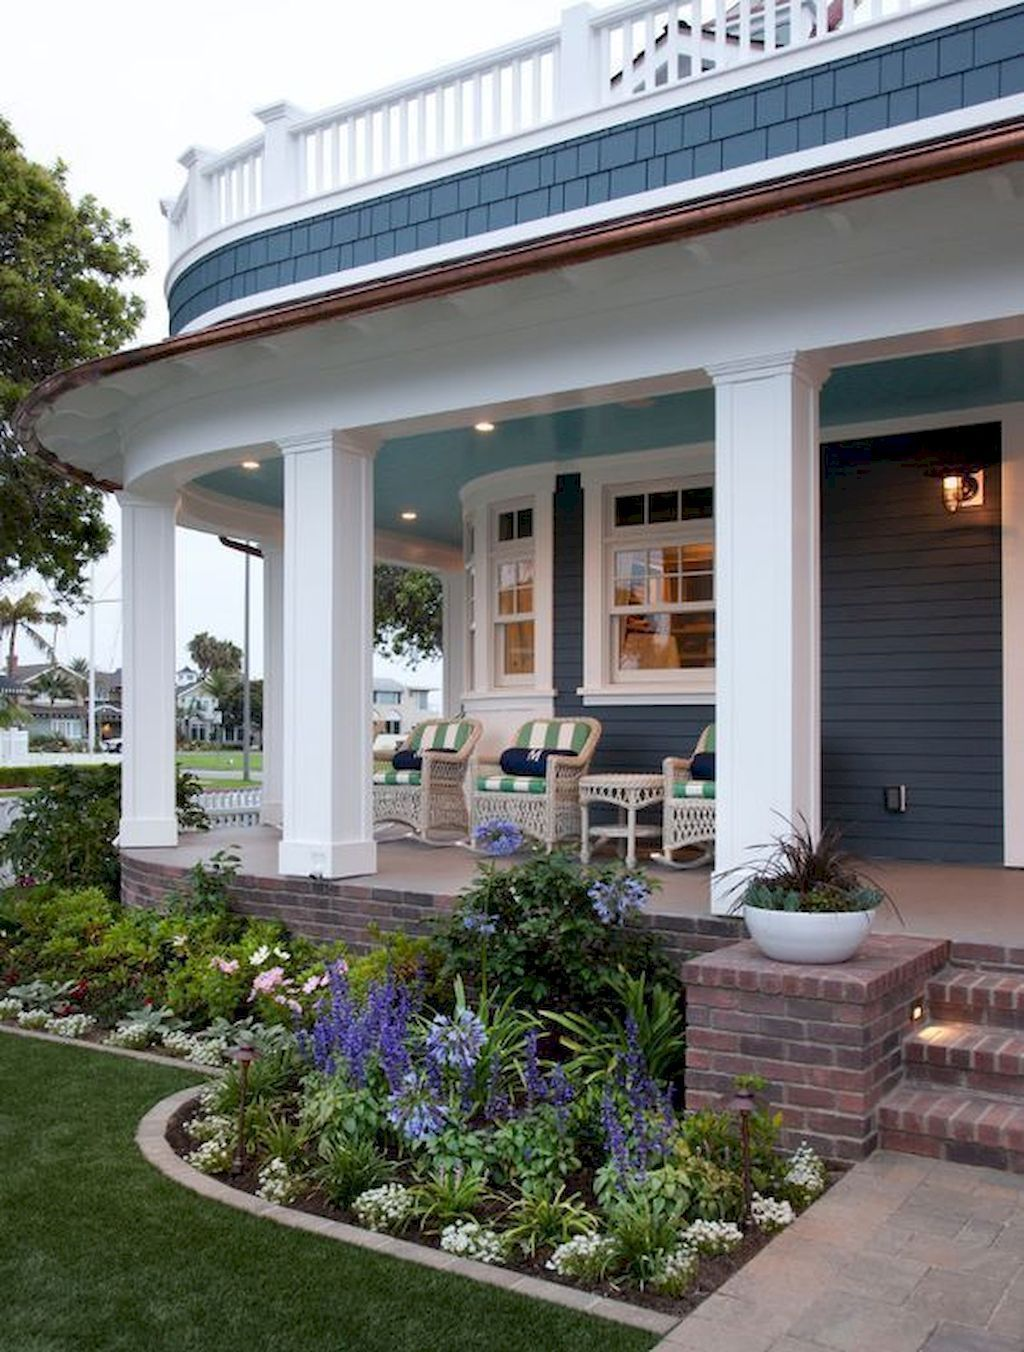 62 low maintenance small front yard landscaping ideas ...